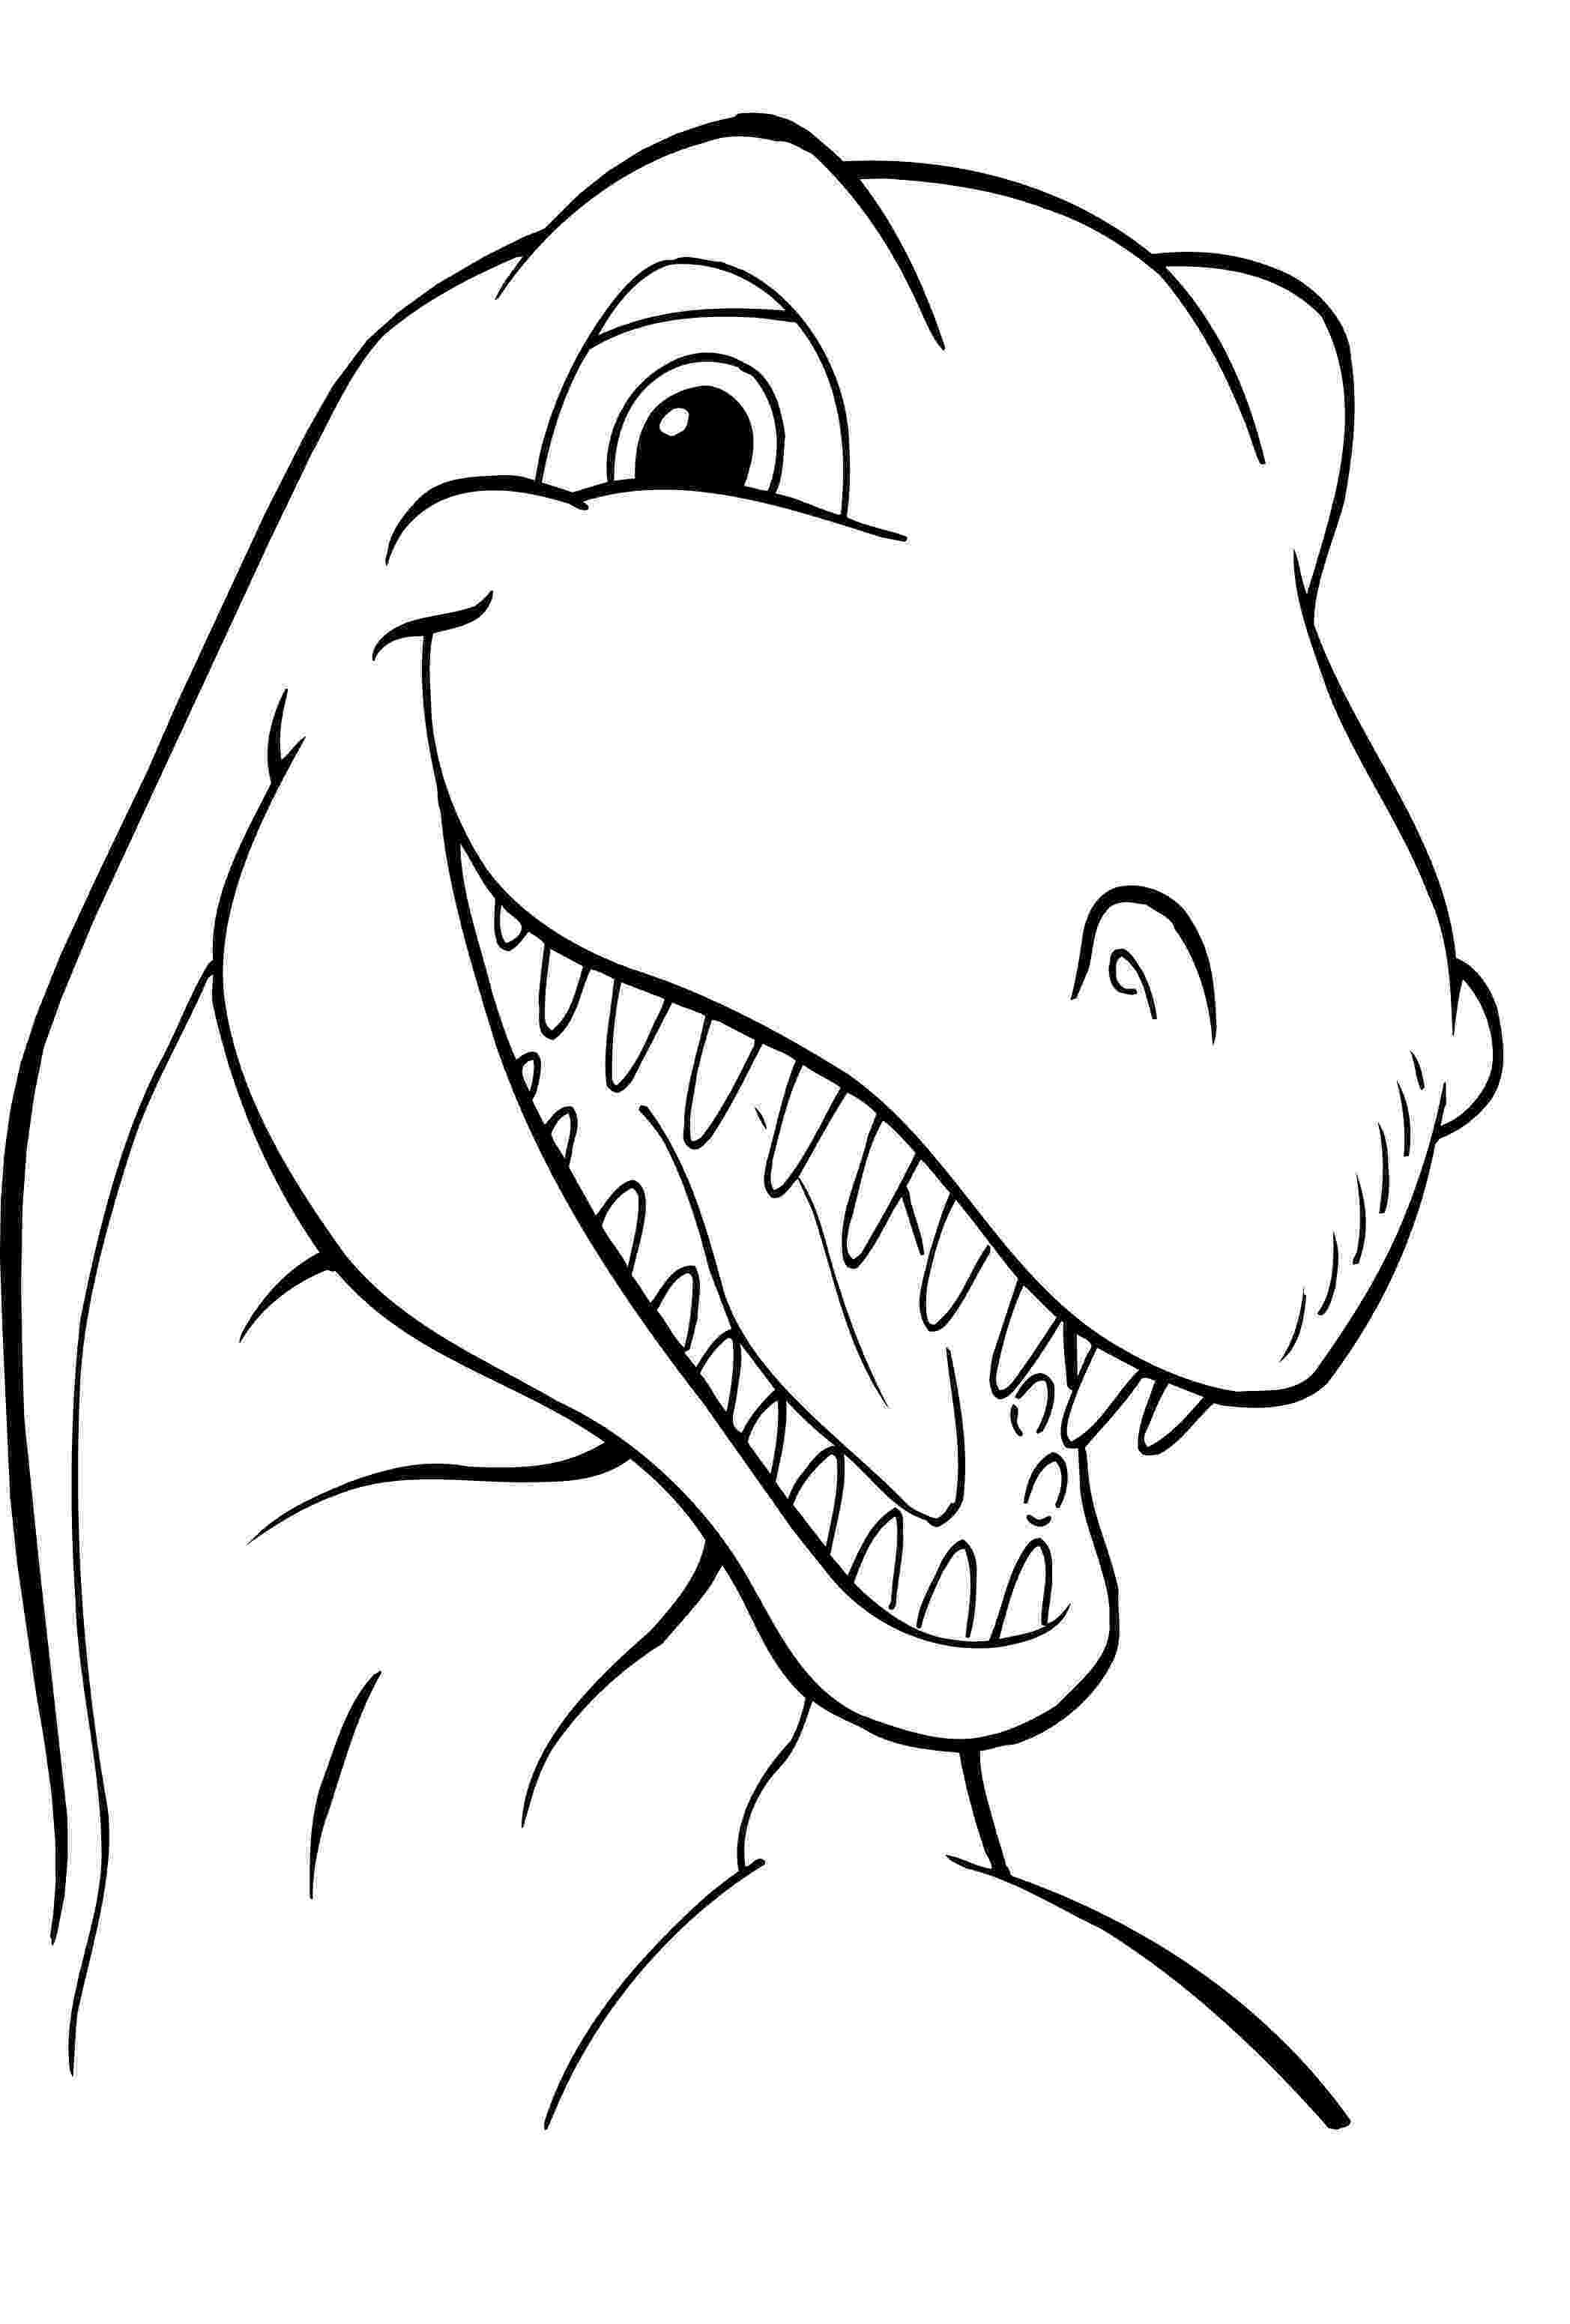 dino colouring pages online fun dinosaur coloring pages imagiplay colouring online pages dino